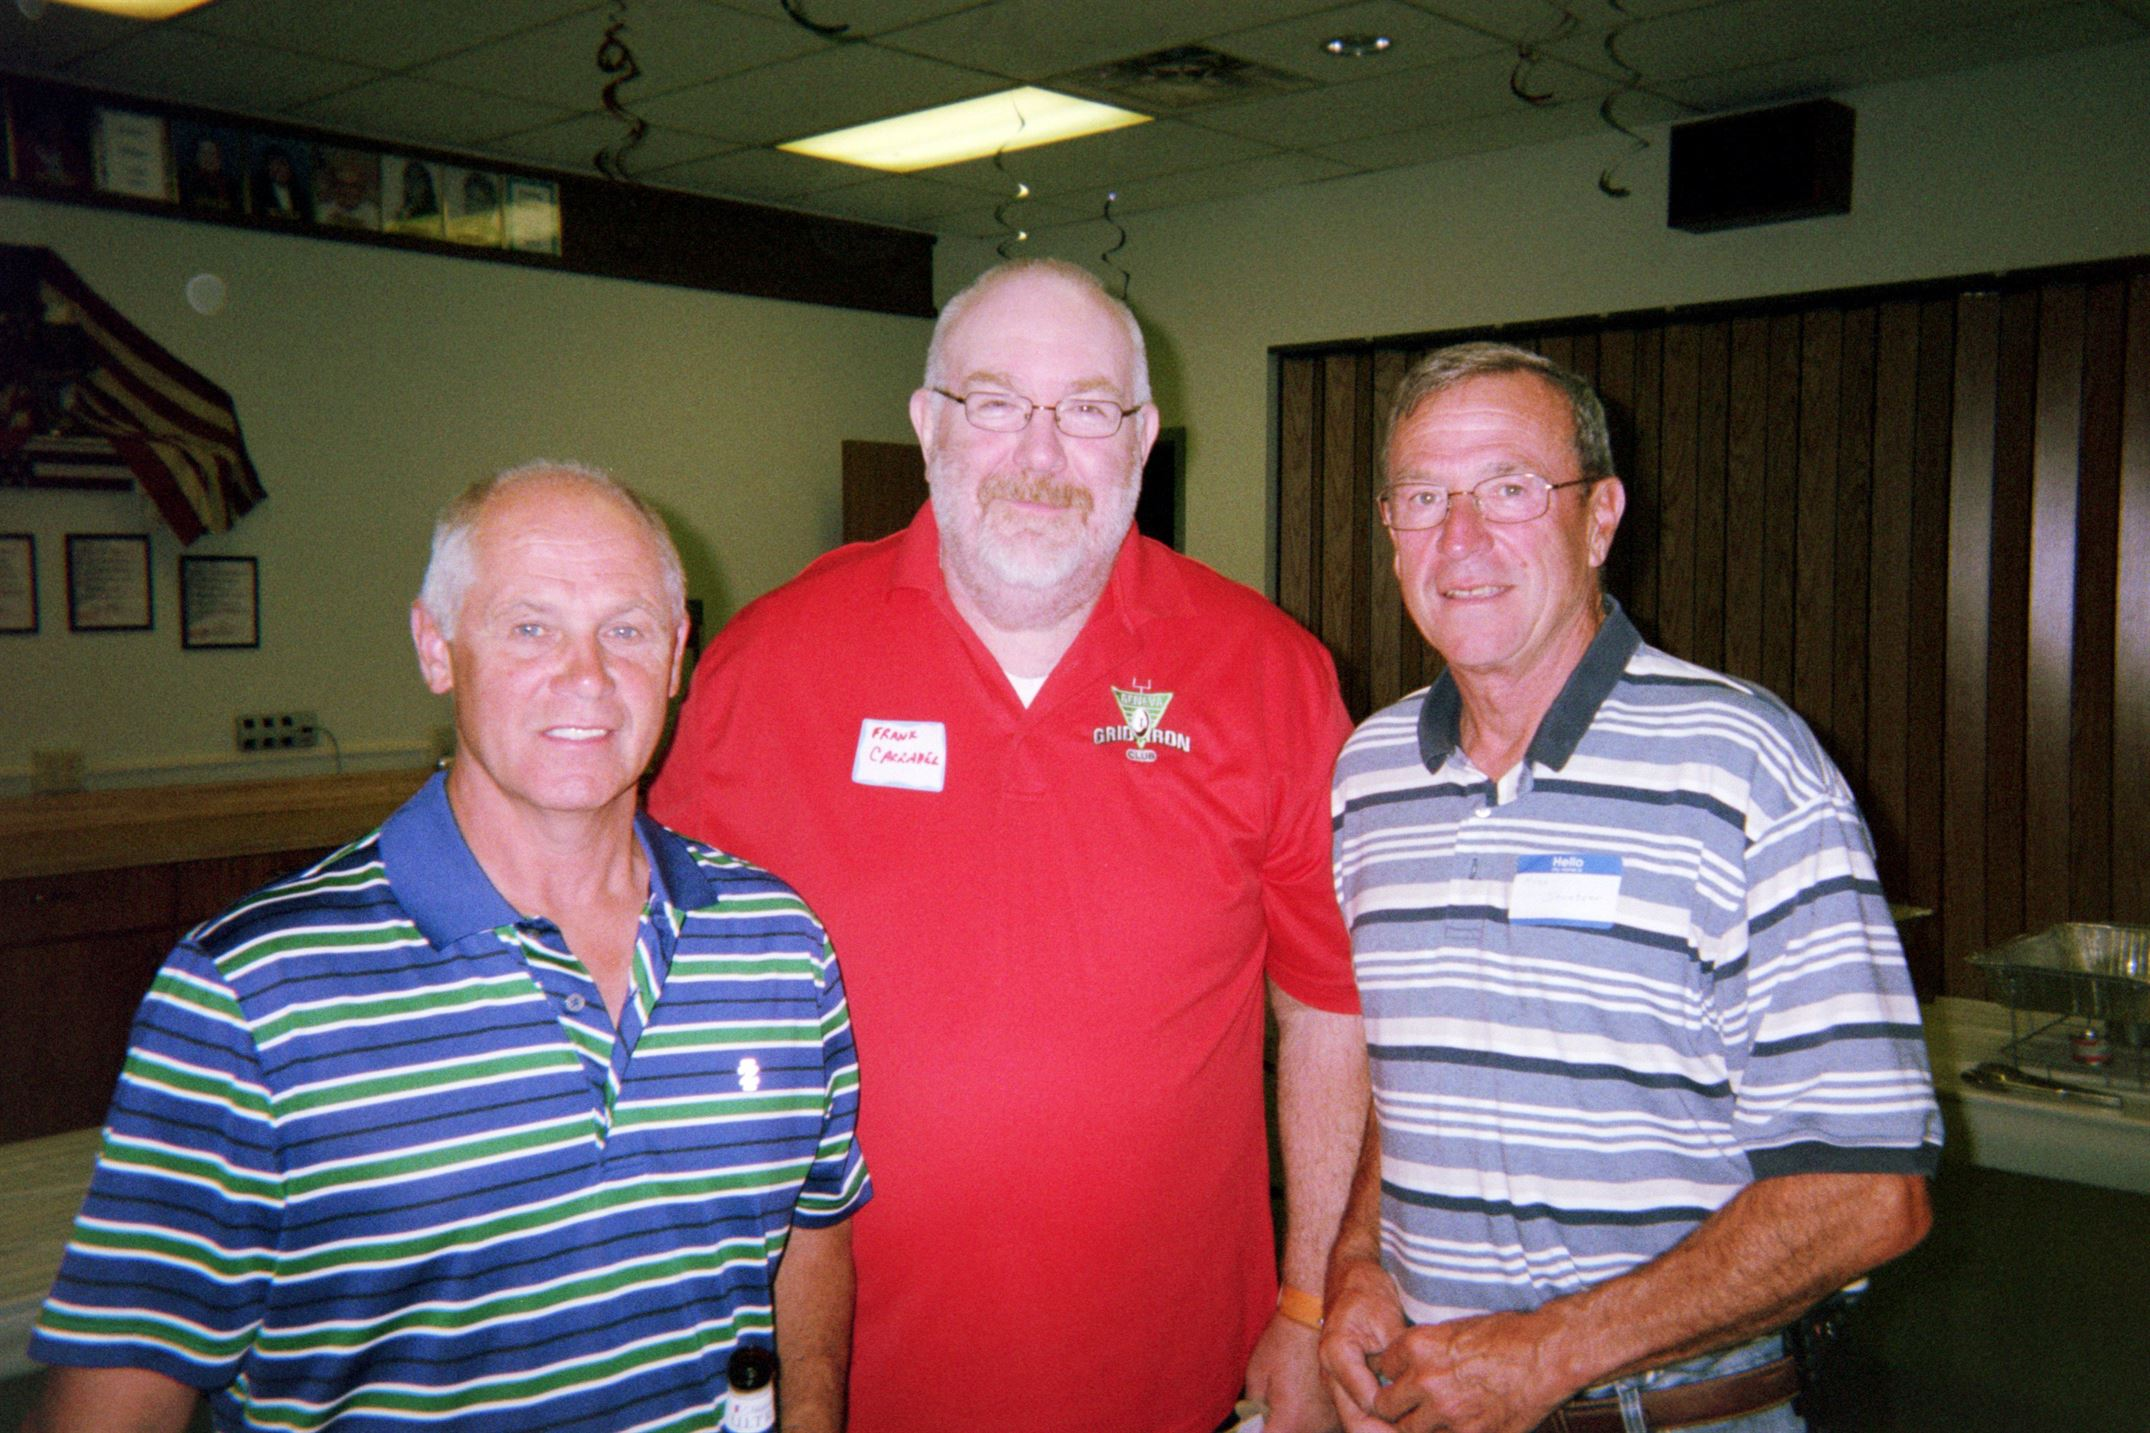 Dick Belconis, Frank Carraher, Alex Steutzer